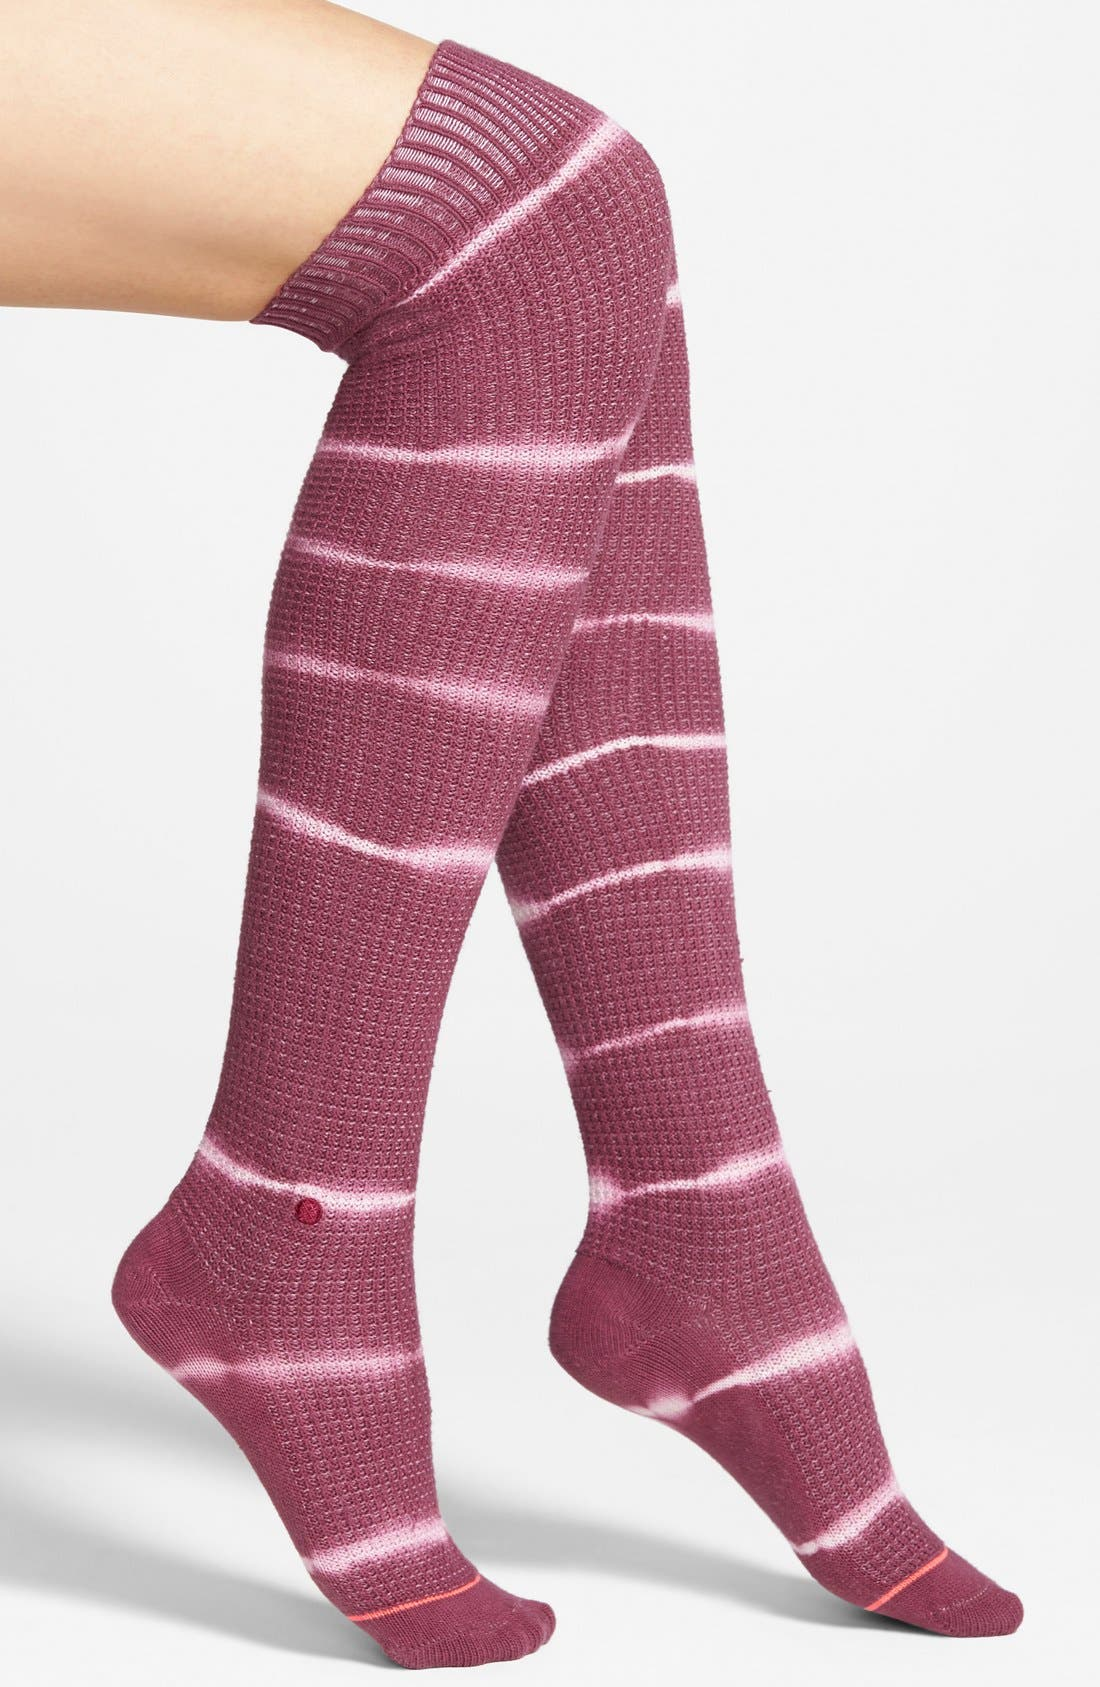 Main Image - Stance 'Icicle' Tie Dye Stripe Over the Knee Socks